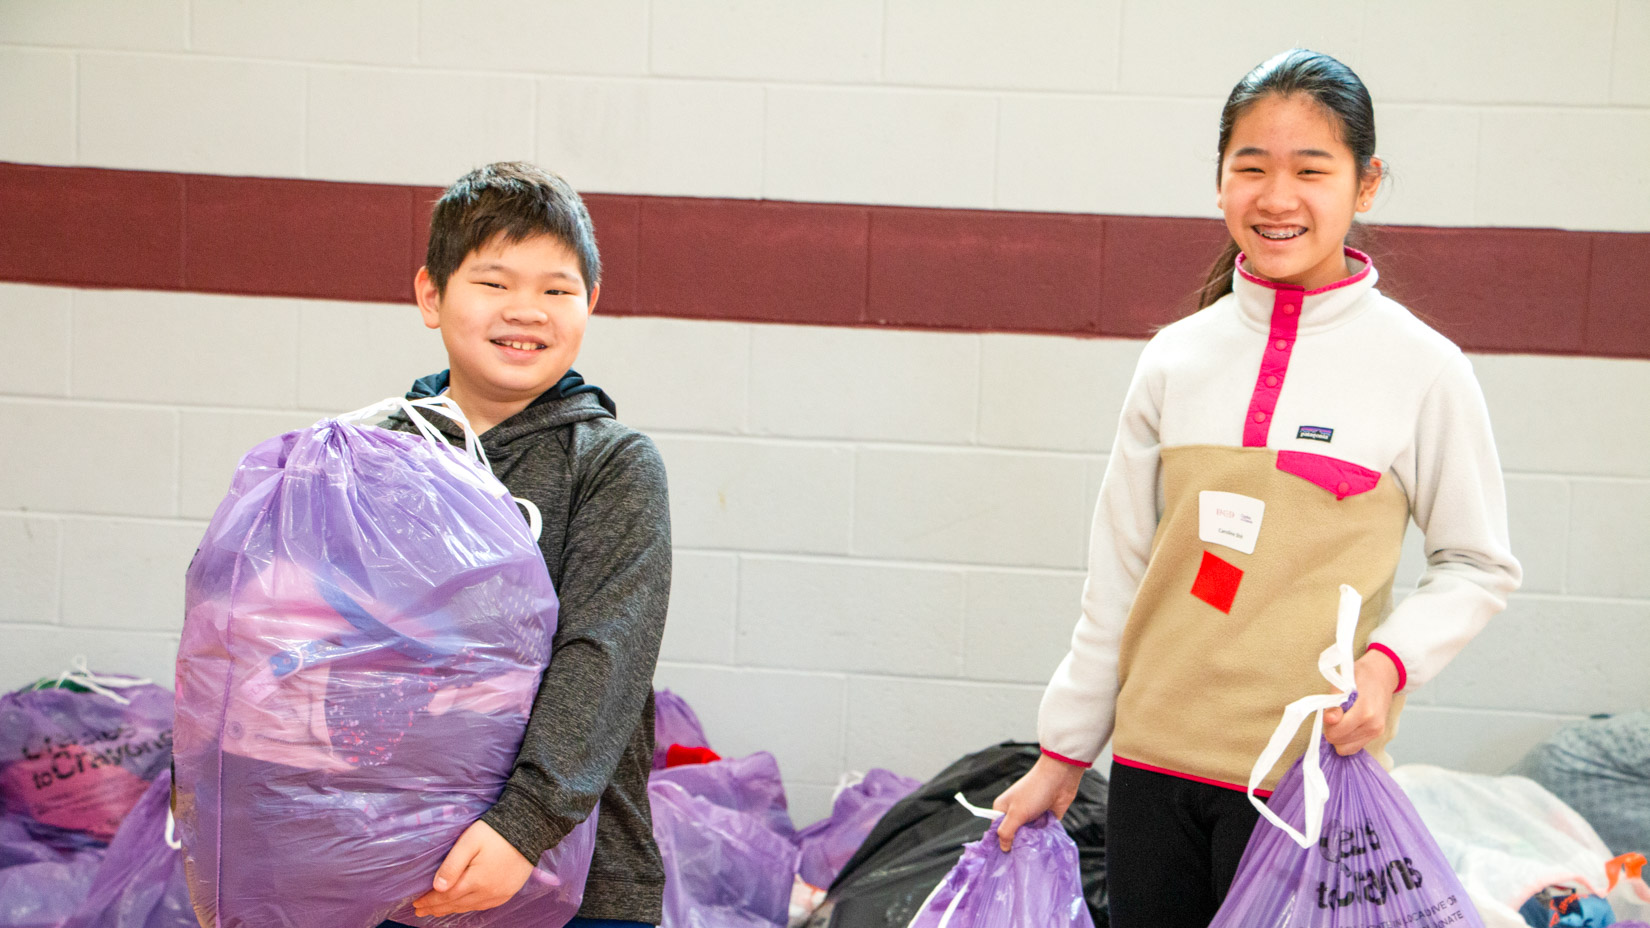 Students with clothes donation bags.